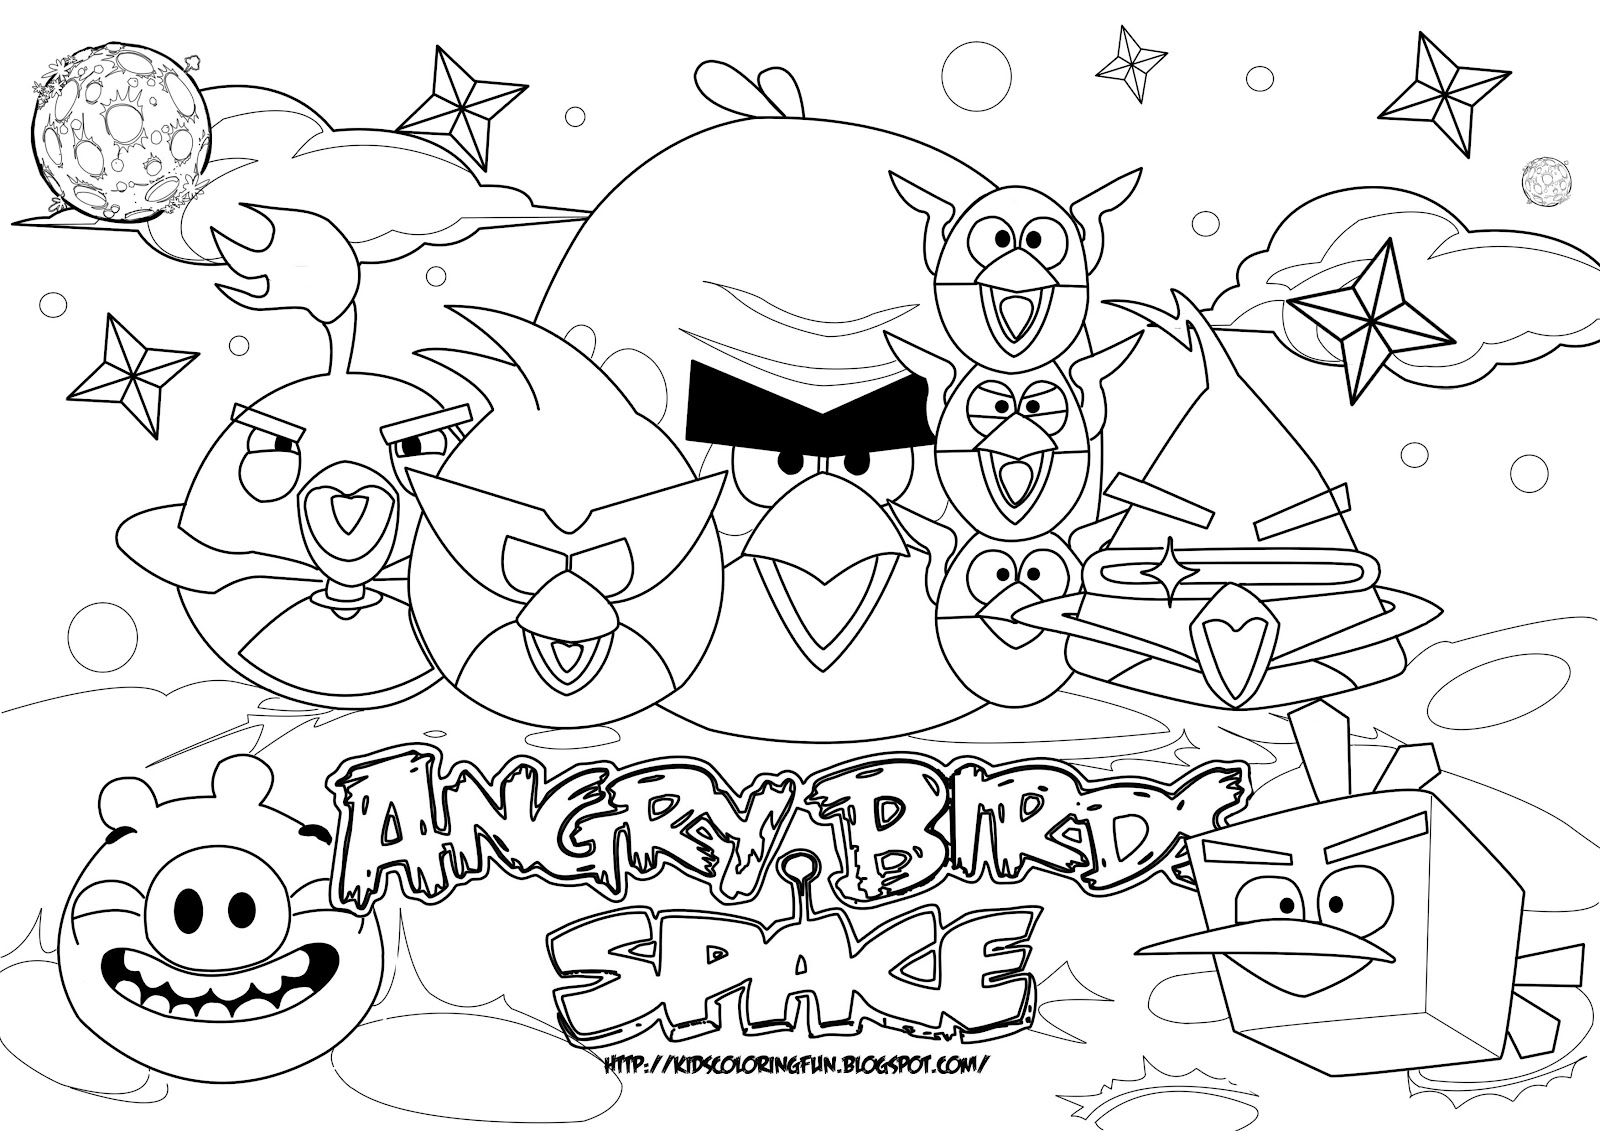 1600x1131 Stunning Free Angry Bird Coloring Pages For Your With Free